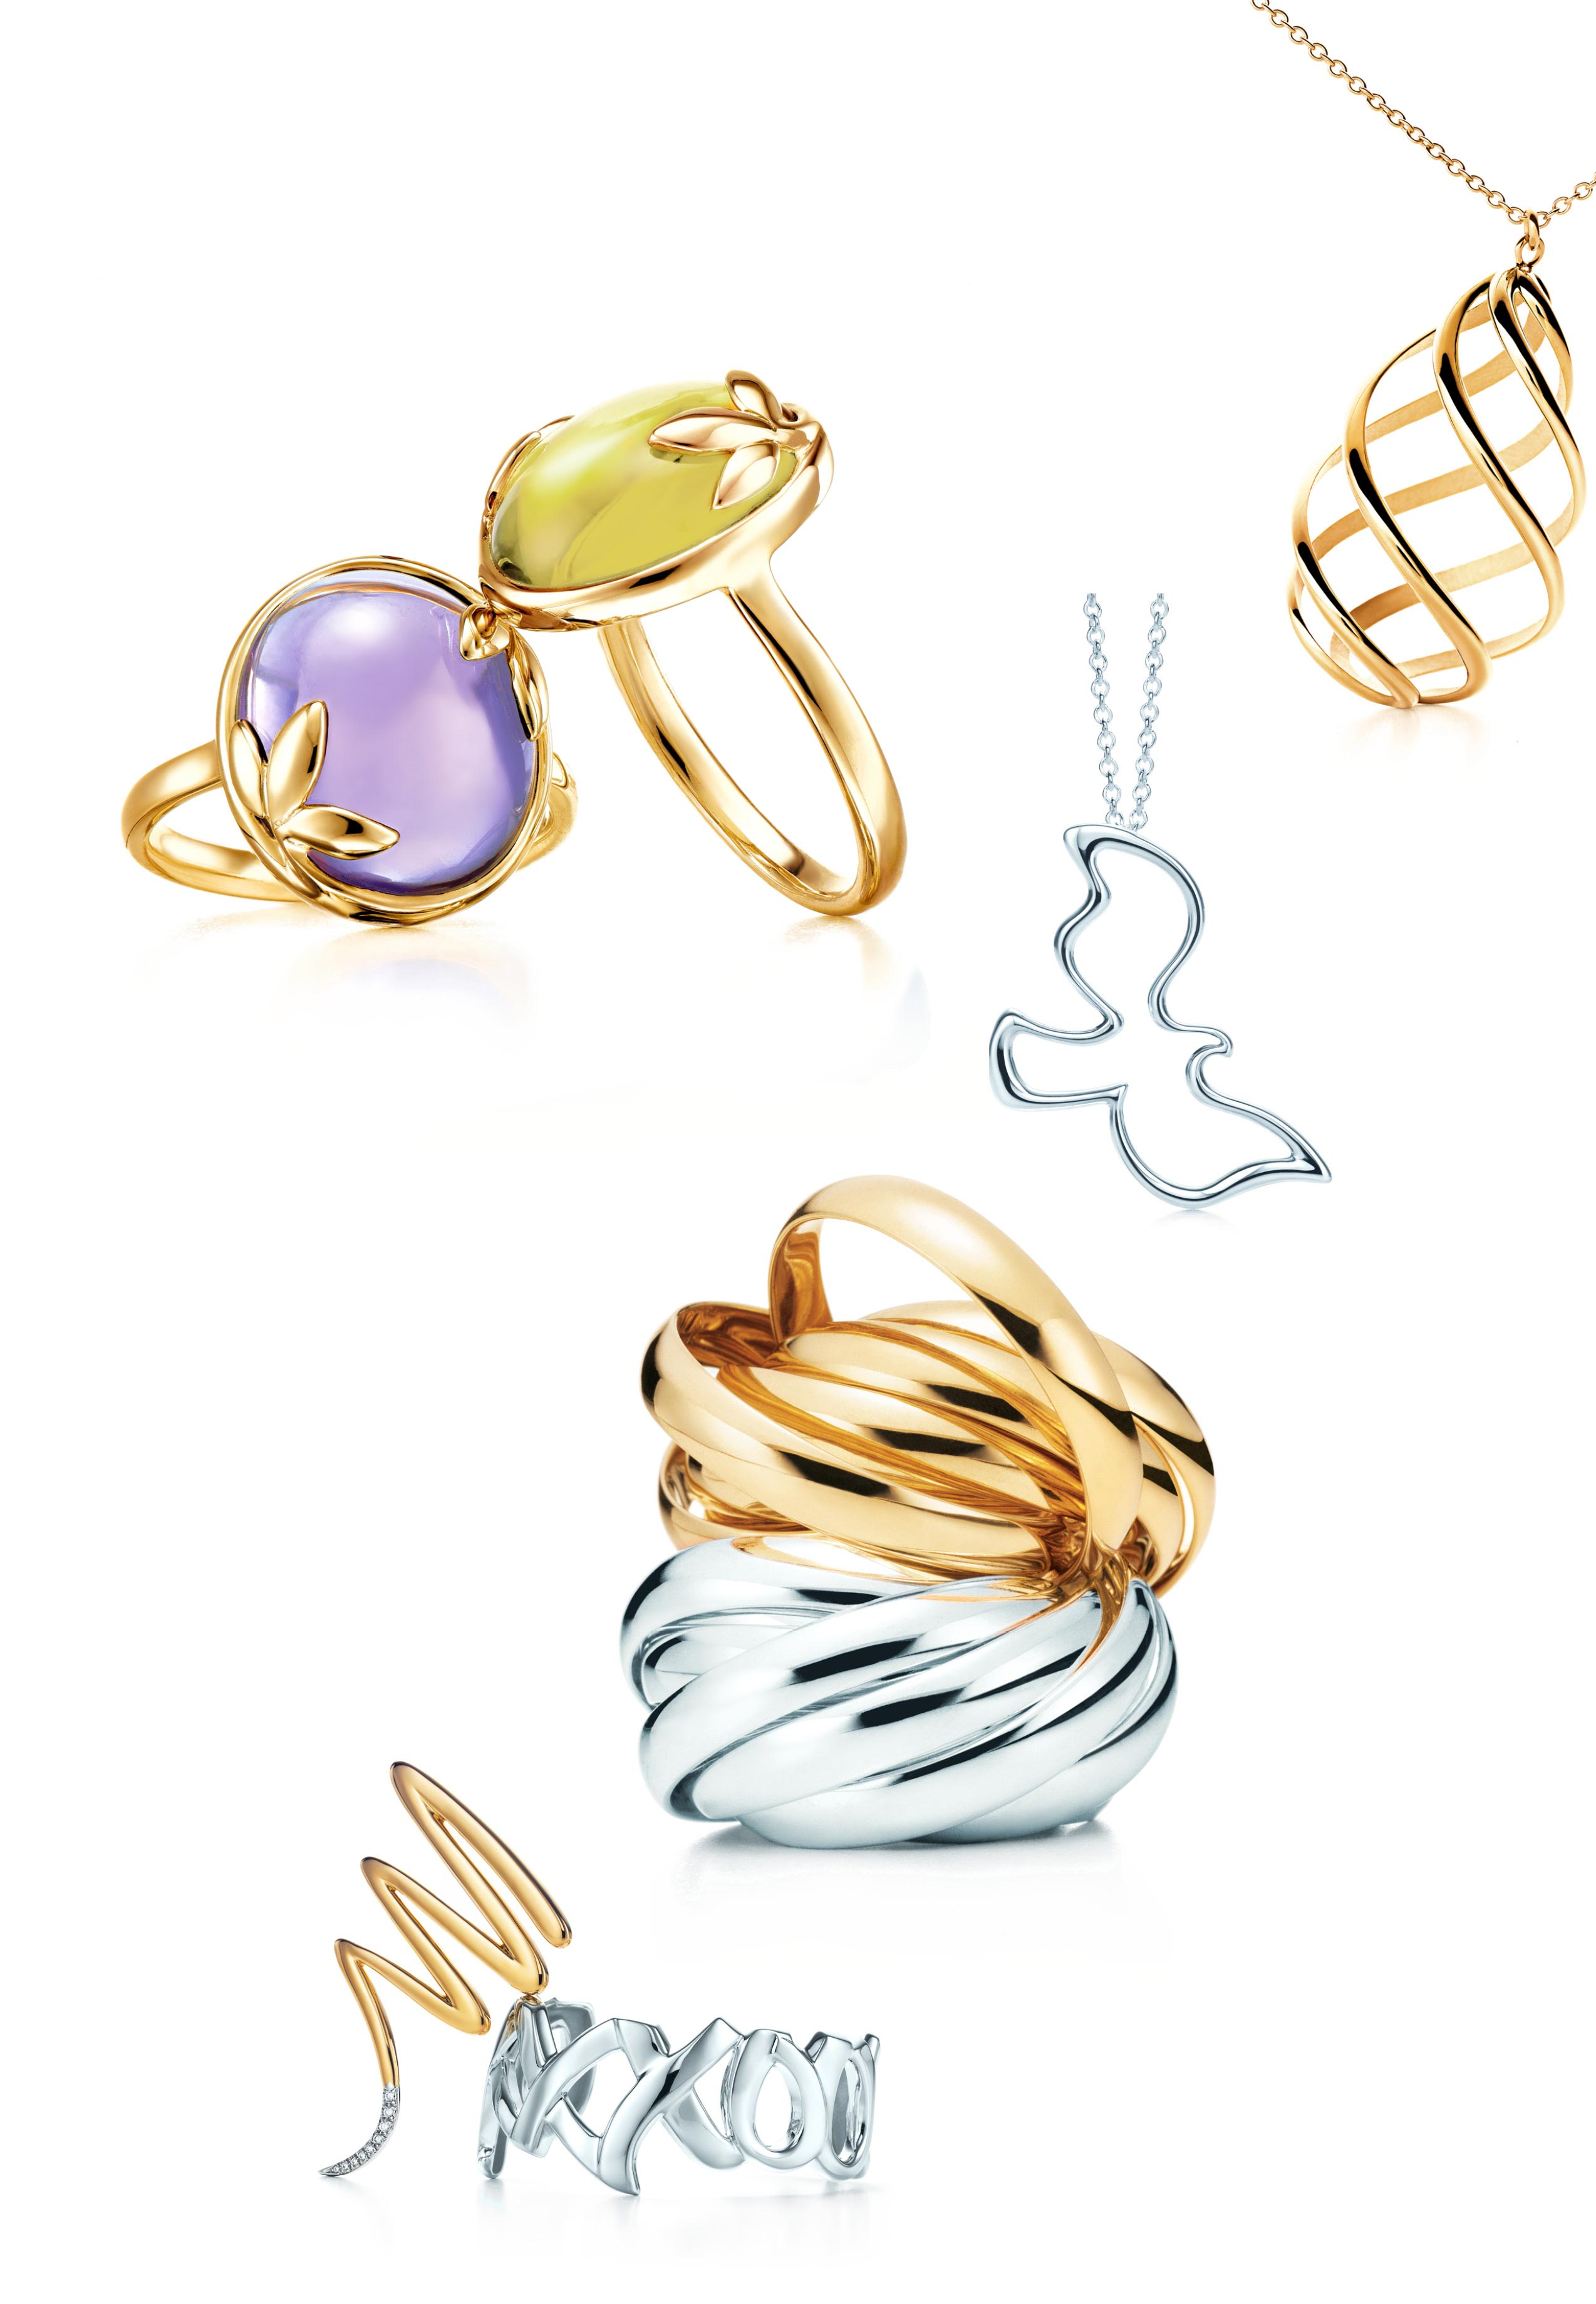 ranging from intricate sumptuous forms to pure expressions of luminous color her collections exude an original style that is pure paloma